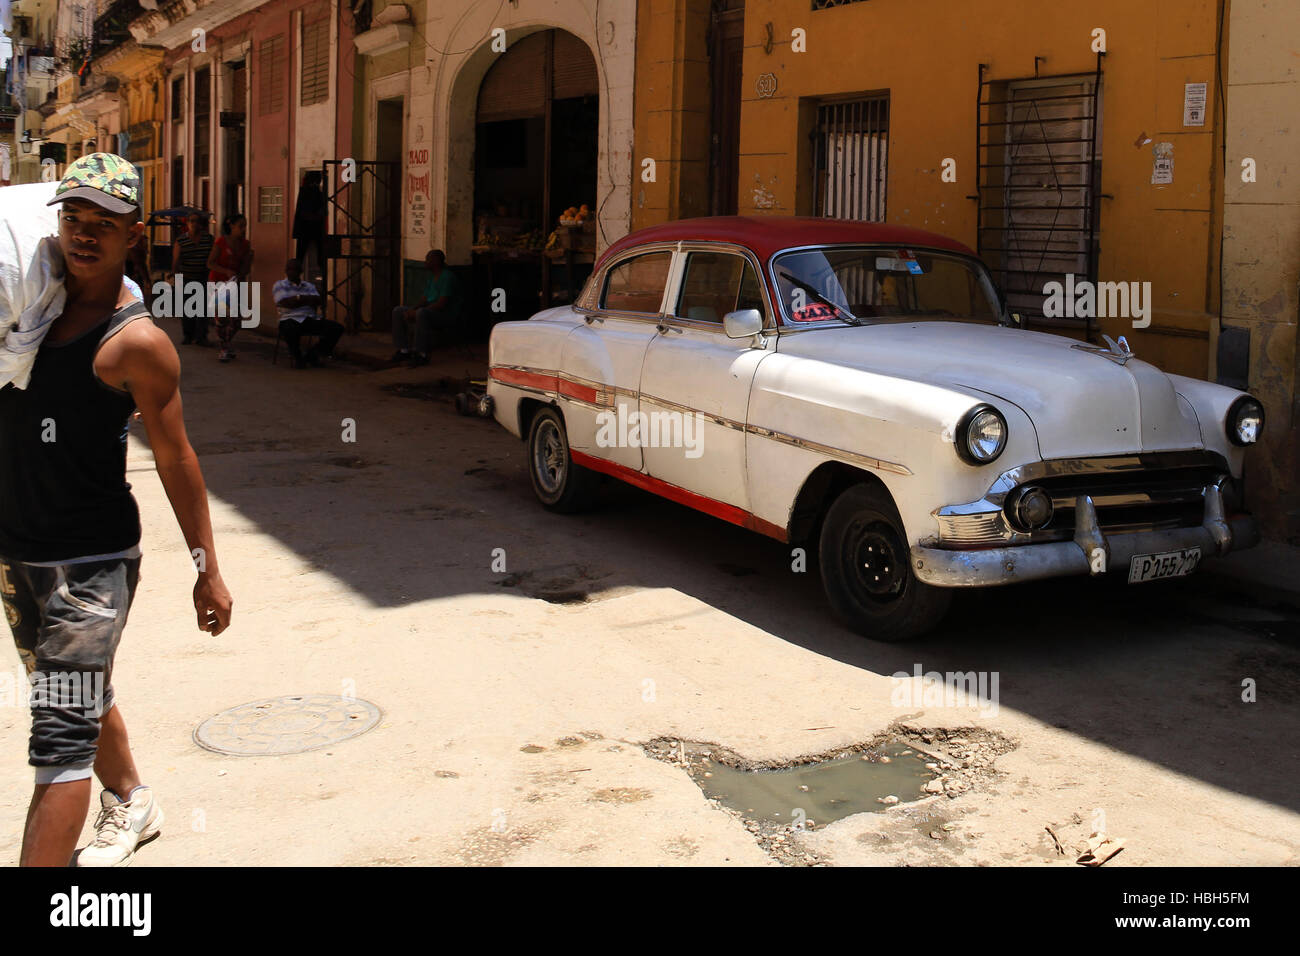 Street scene Havanna, Cuba. Stock Photo